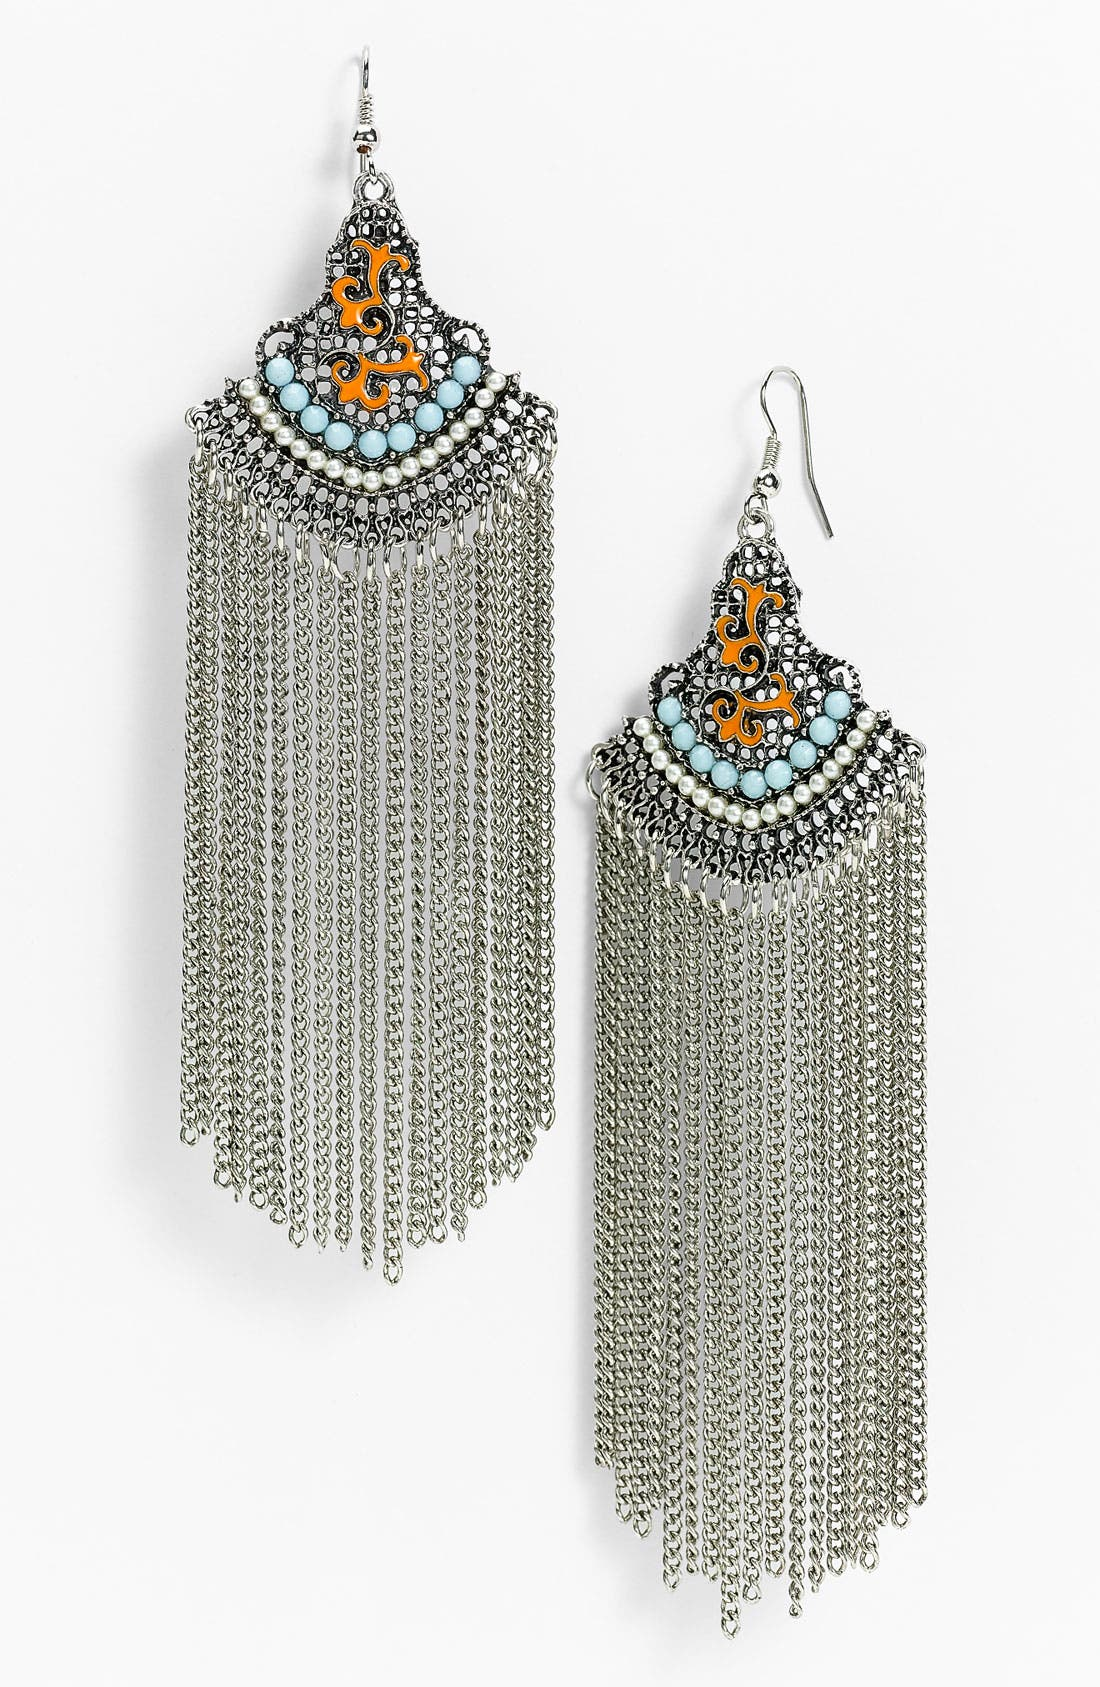 Main Image - Cara Couture 'Tribal' Chain Fringe Statement Earrings